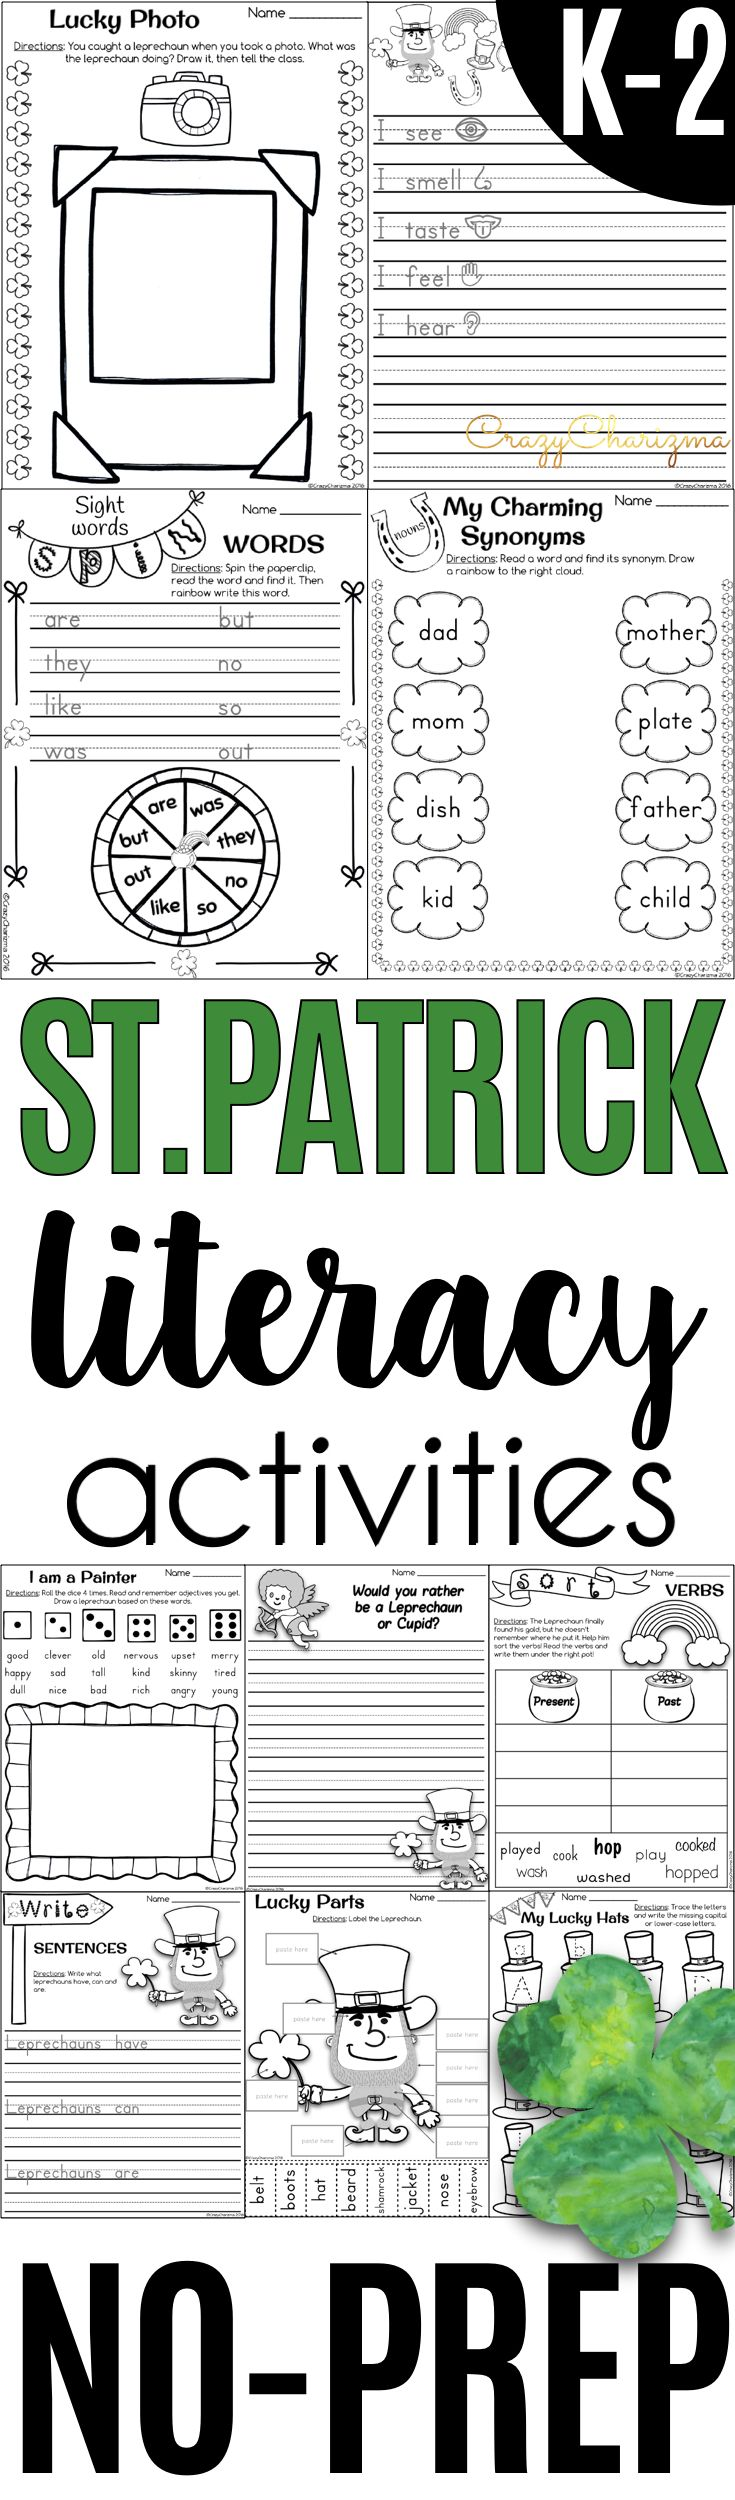 Check out NO-PREP St. Patrick's Day literacy activities for Kindergarten through Grade 2. Packet contains thematic vocabulary flashcards, practicing capital or lower-case letters, sight words spin activities, writing prompts and acrostic poem, synonyms and antonyms practice, CVC and CVCe words reading, verbs tense activities and much more! | CrazyCharizma